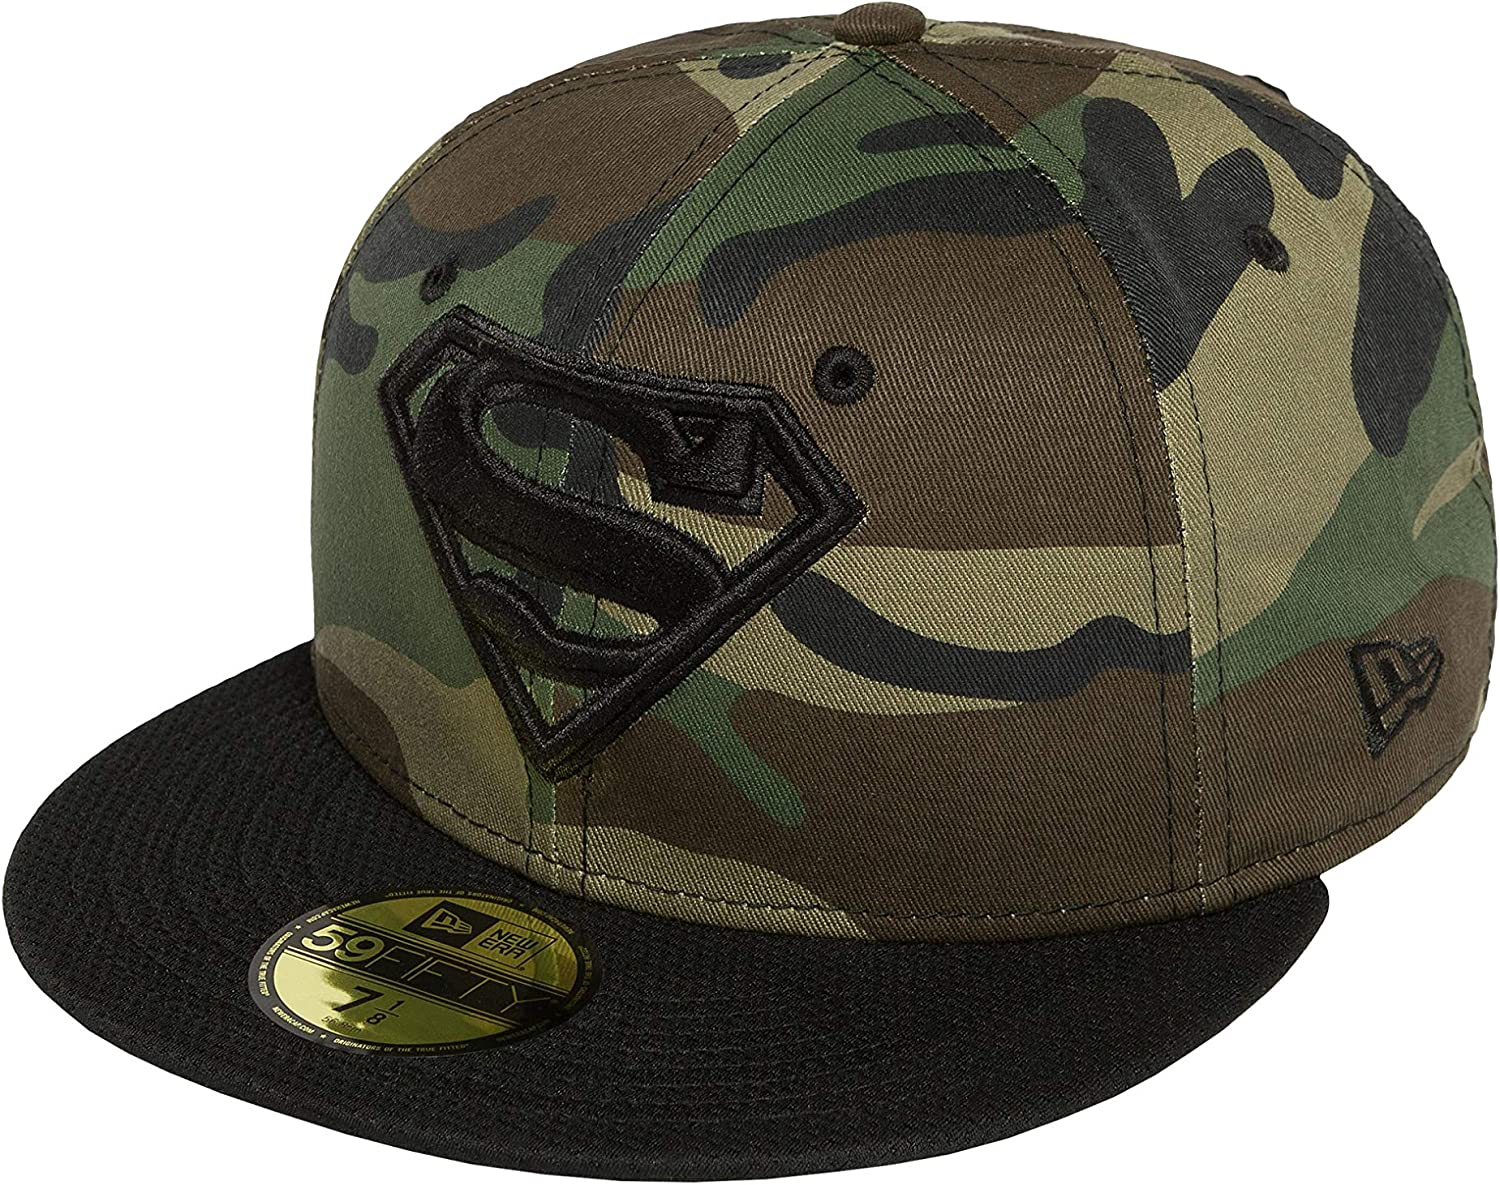 New Era Mujeres Gorras / Gorra plana Camohero Superman: Amazon.es ...